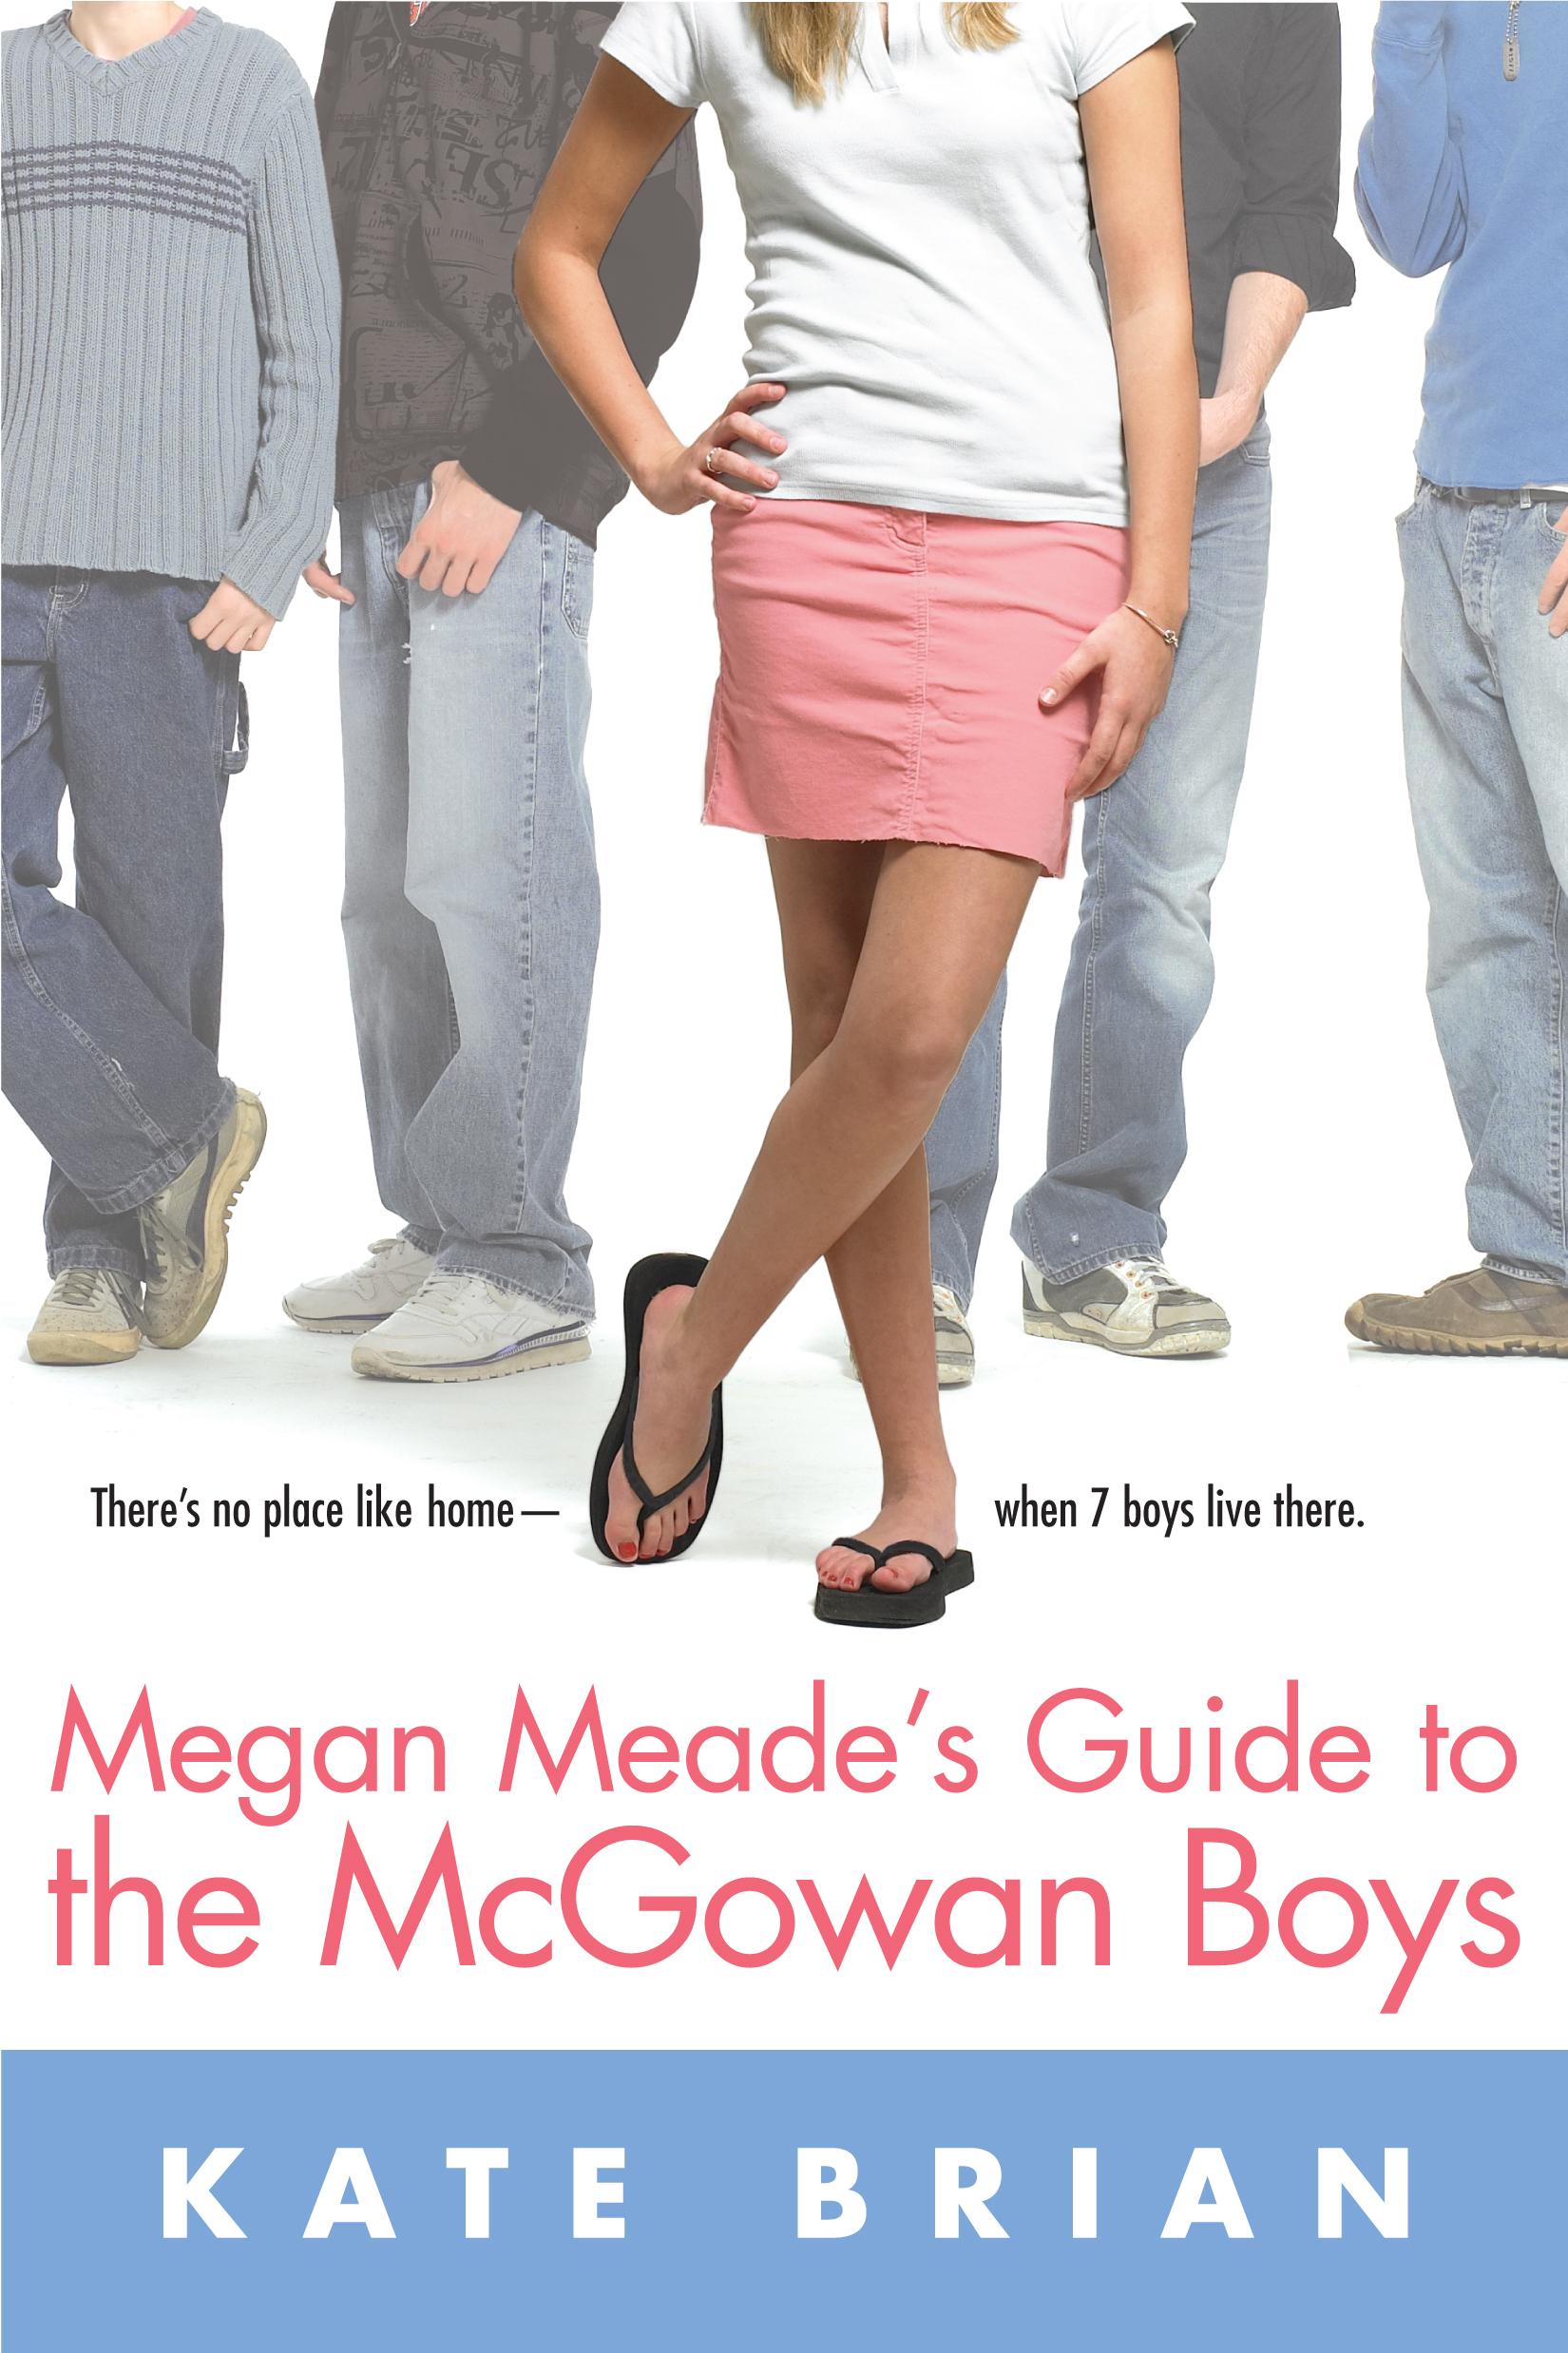 Resultado de imagen para megan meade's guide to the mcgowan